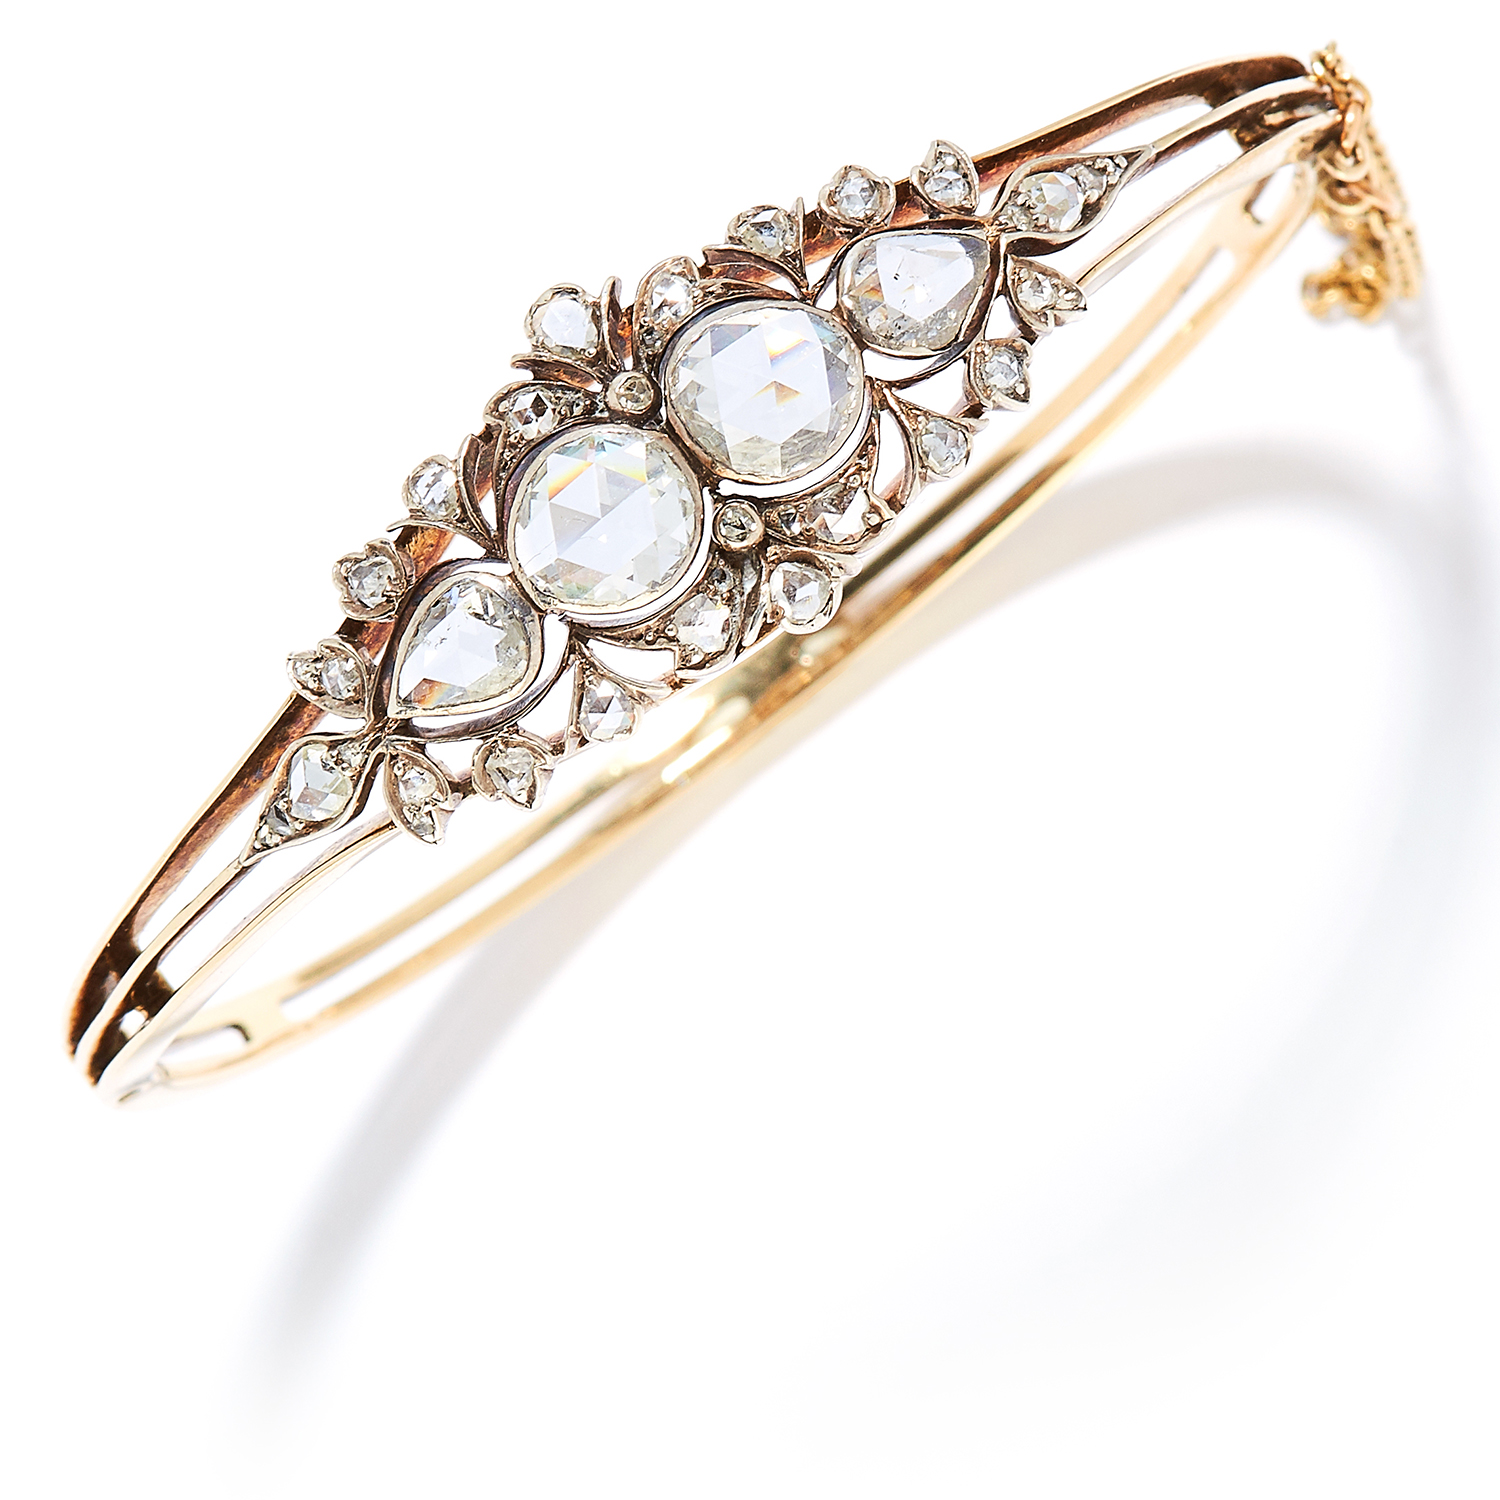 ANTIQUE DIAMOND BANGLE in yellow gold, set with rose cut diamonds totalling approximately 2.30